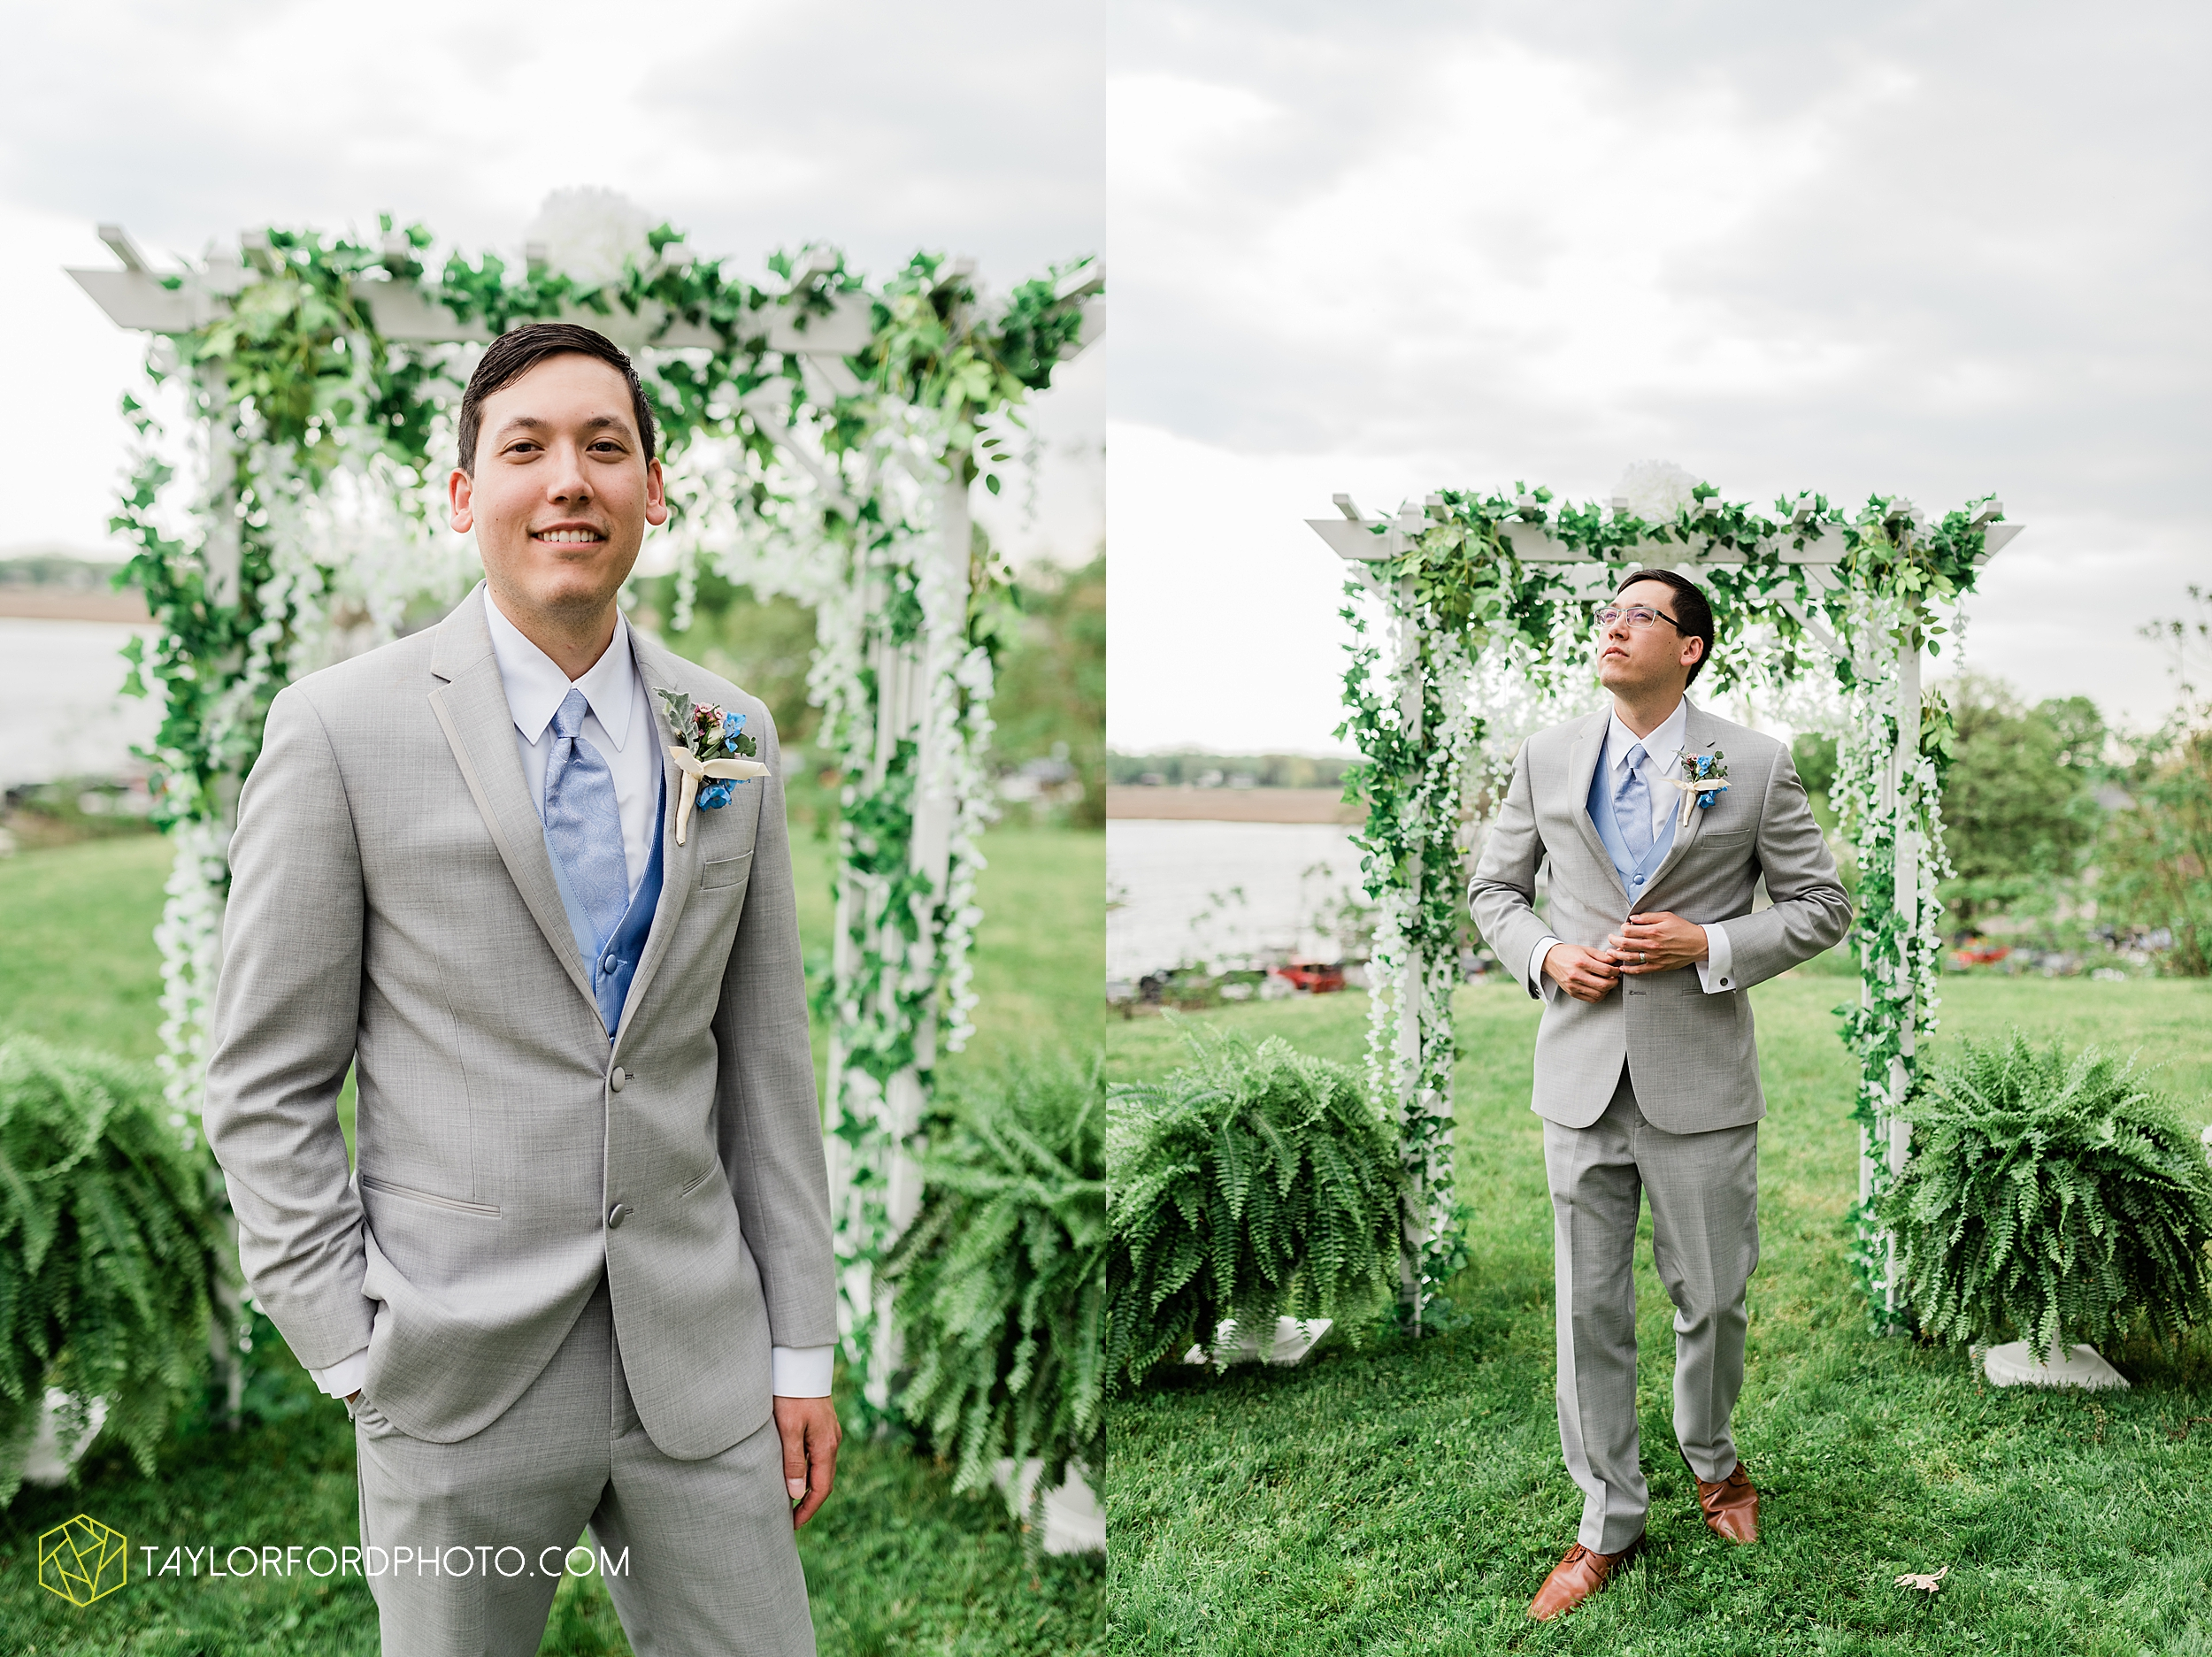 janine-shaun-oakwood-resort-syracuse-indiana-lake-wawasee-wedding-hilltop-one-fine-day-photographer-photography-taylor-ford-hirschy-photographer_2766.jpg